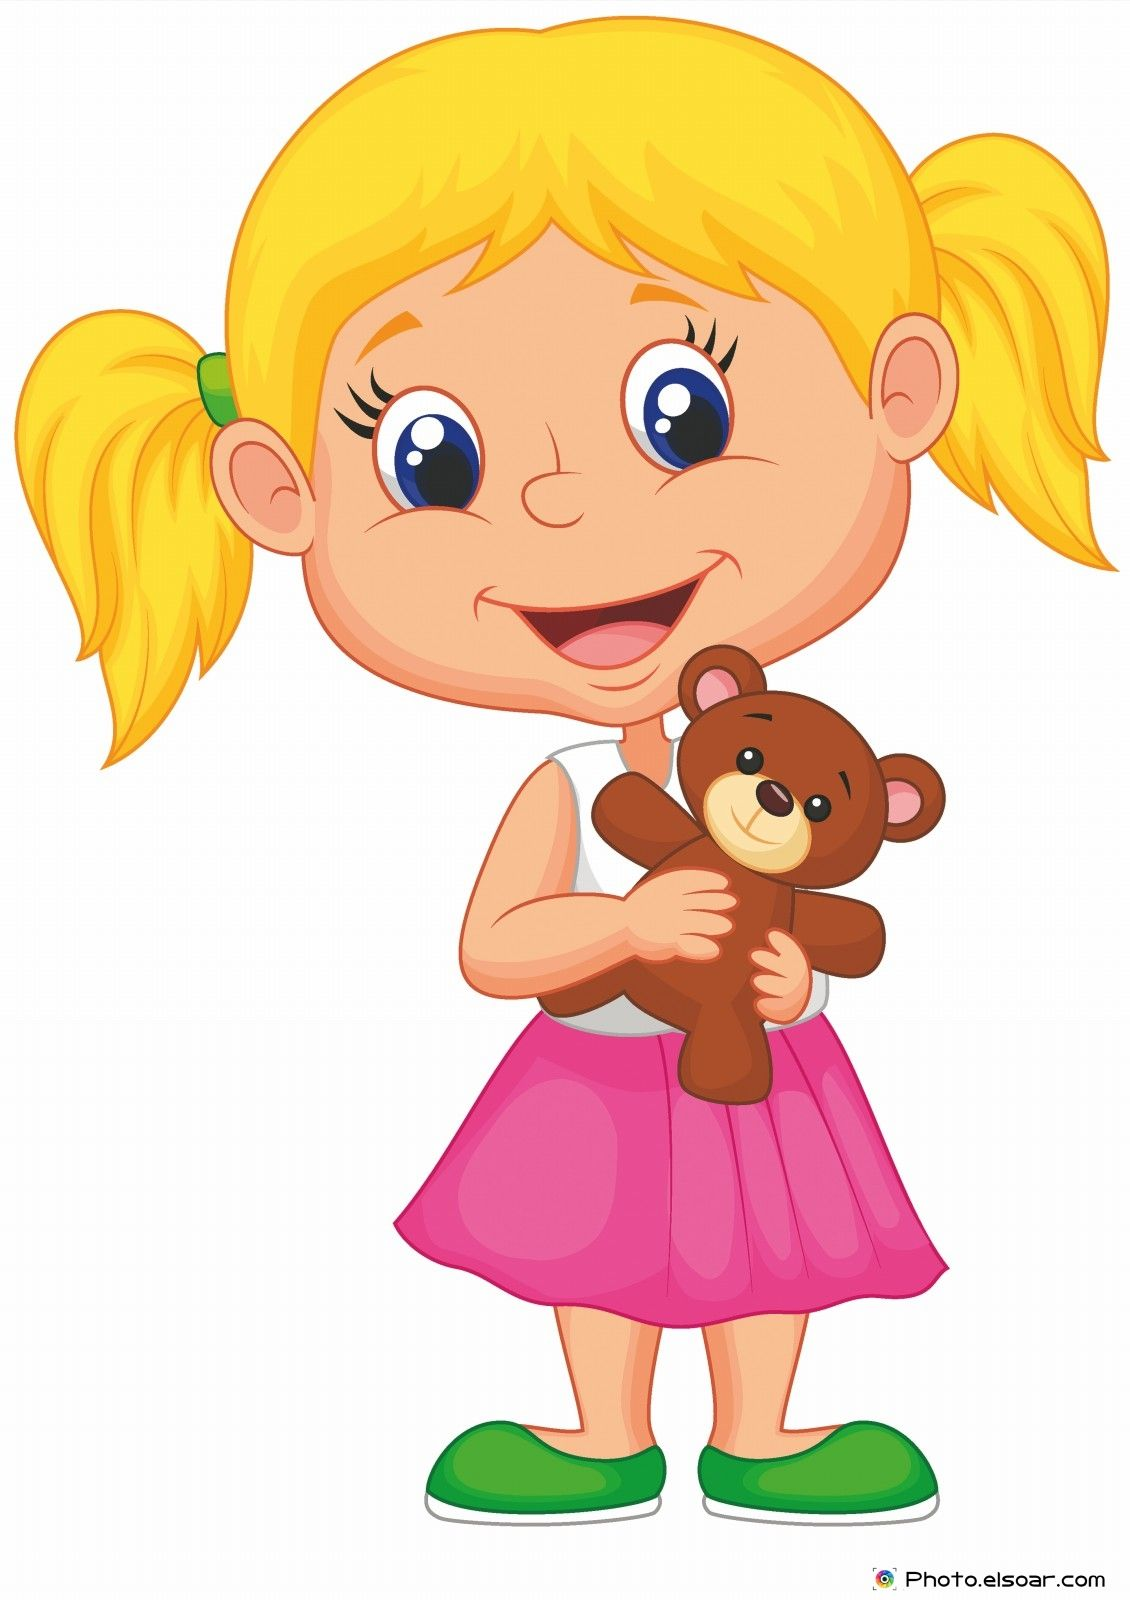 Find cute girl cartoon Stock Images in HD and millions of other royalty-free stock photos, illustrations, and vectors in the Shutterstock collection. Thousands of new, high-quality pictures added every day.